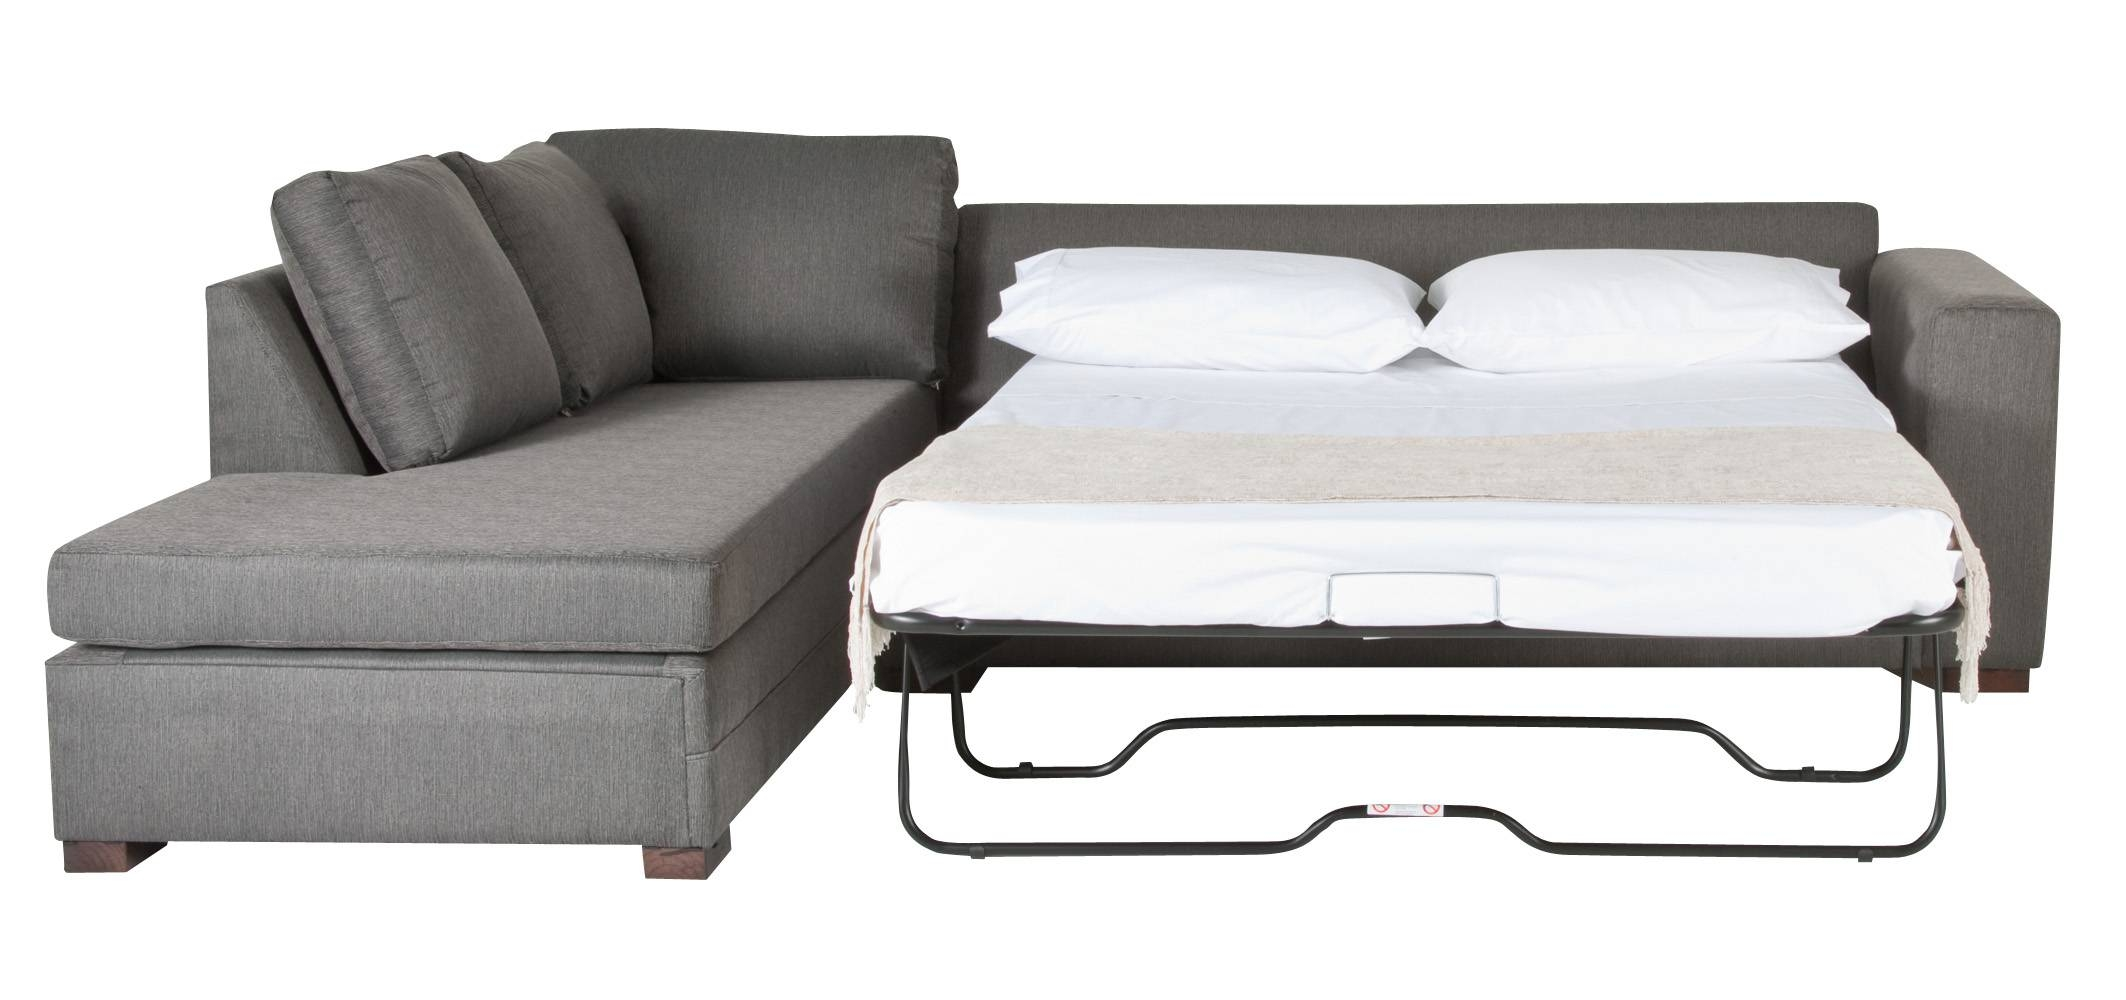 Fold Out Sofa Bed Queen - Leather Sectional Sofa intended for Sofa Beds Queen (Image 9 of 30)